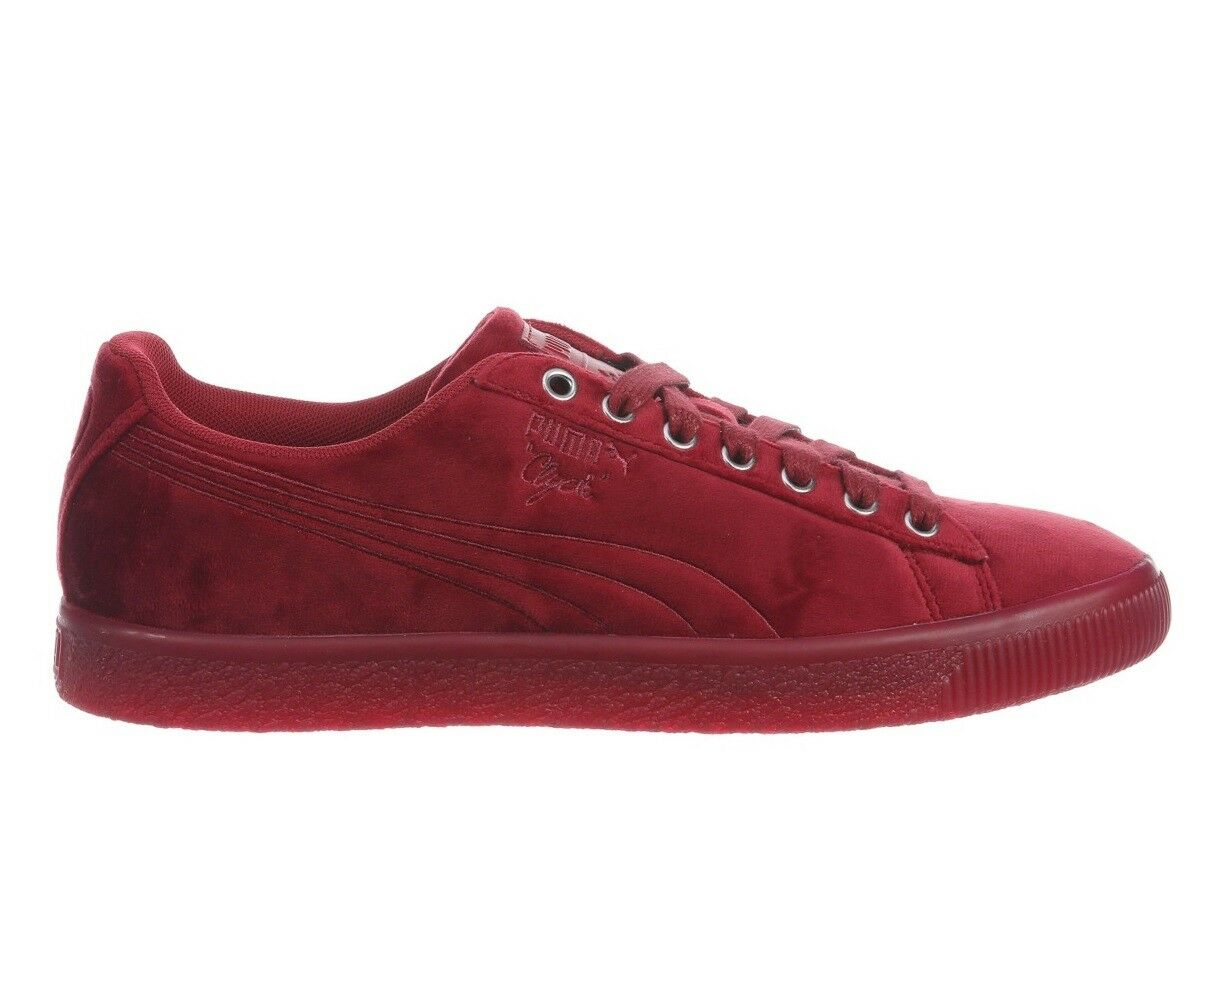 Puma Clyde Velour Ice Mens 366549-04 Tibetan Red Velvet Athletic Shoes Size 9.5